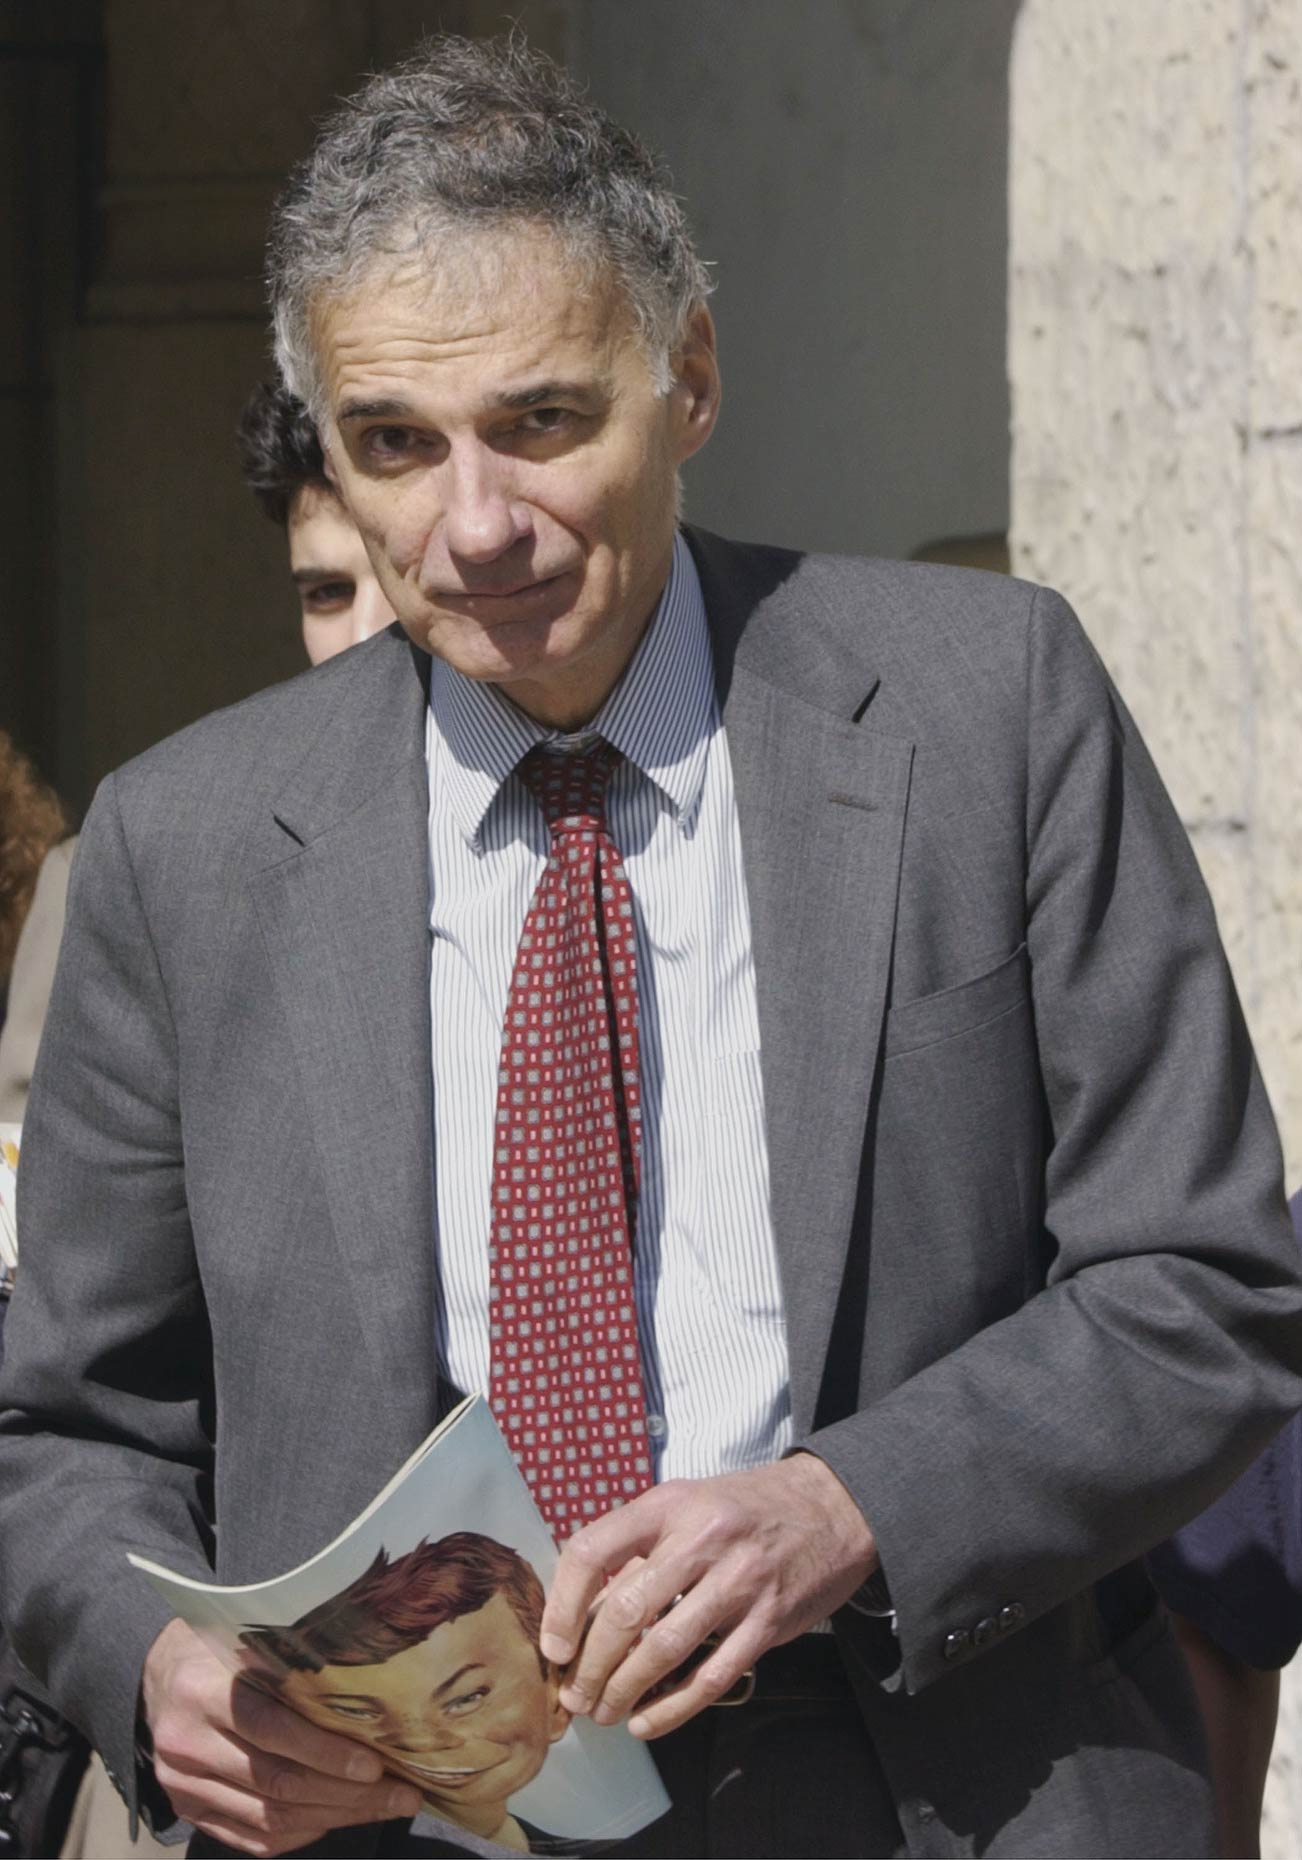 PEO_PhotoReporters_Ralph-Nader